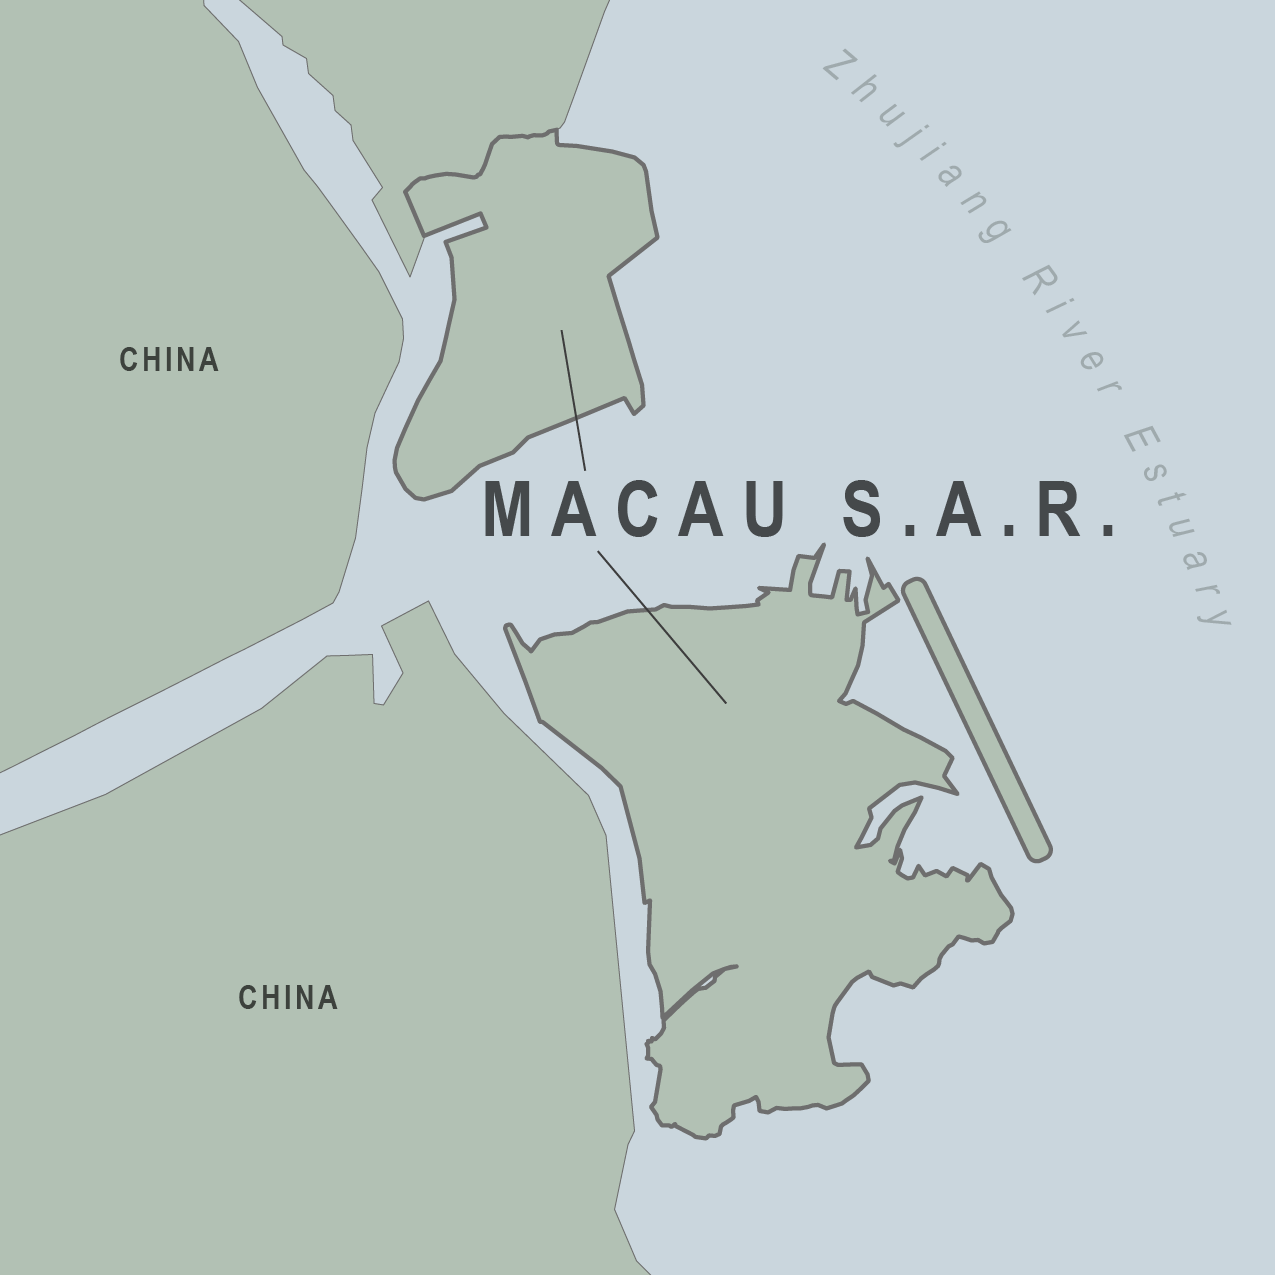 Map - Macau SAR (China)